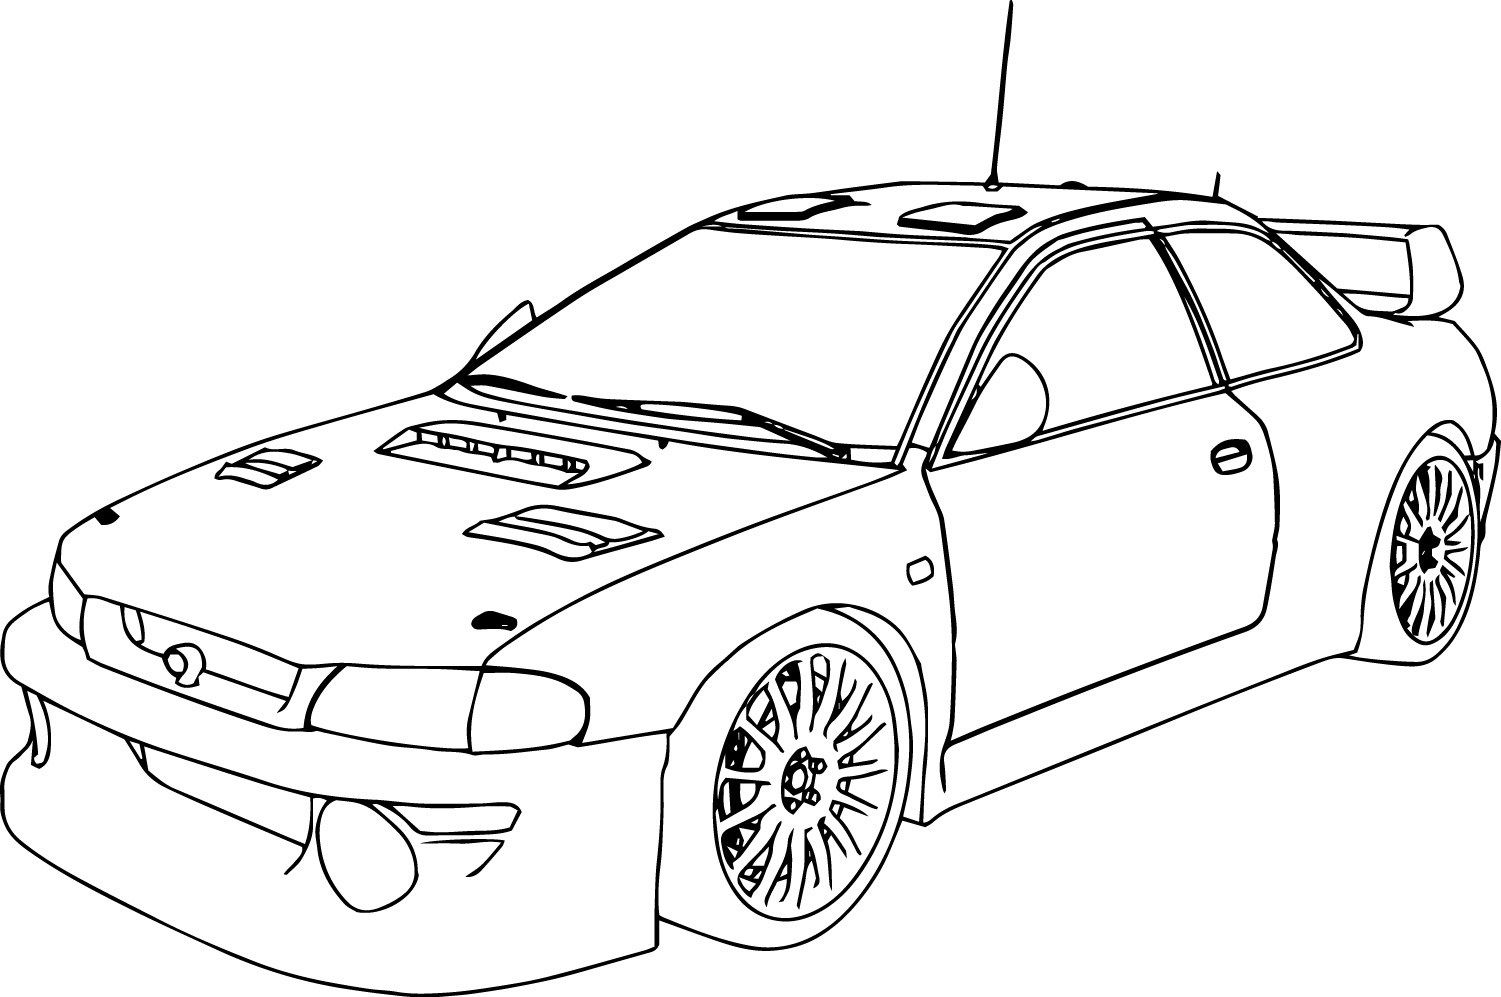 race car coloring 29 best images about coloring pages on pinterest cars coloring car race